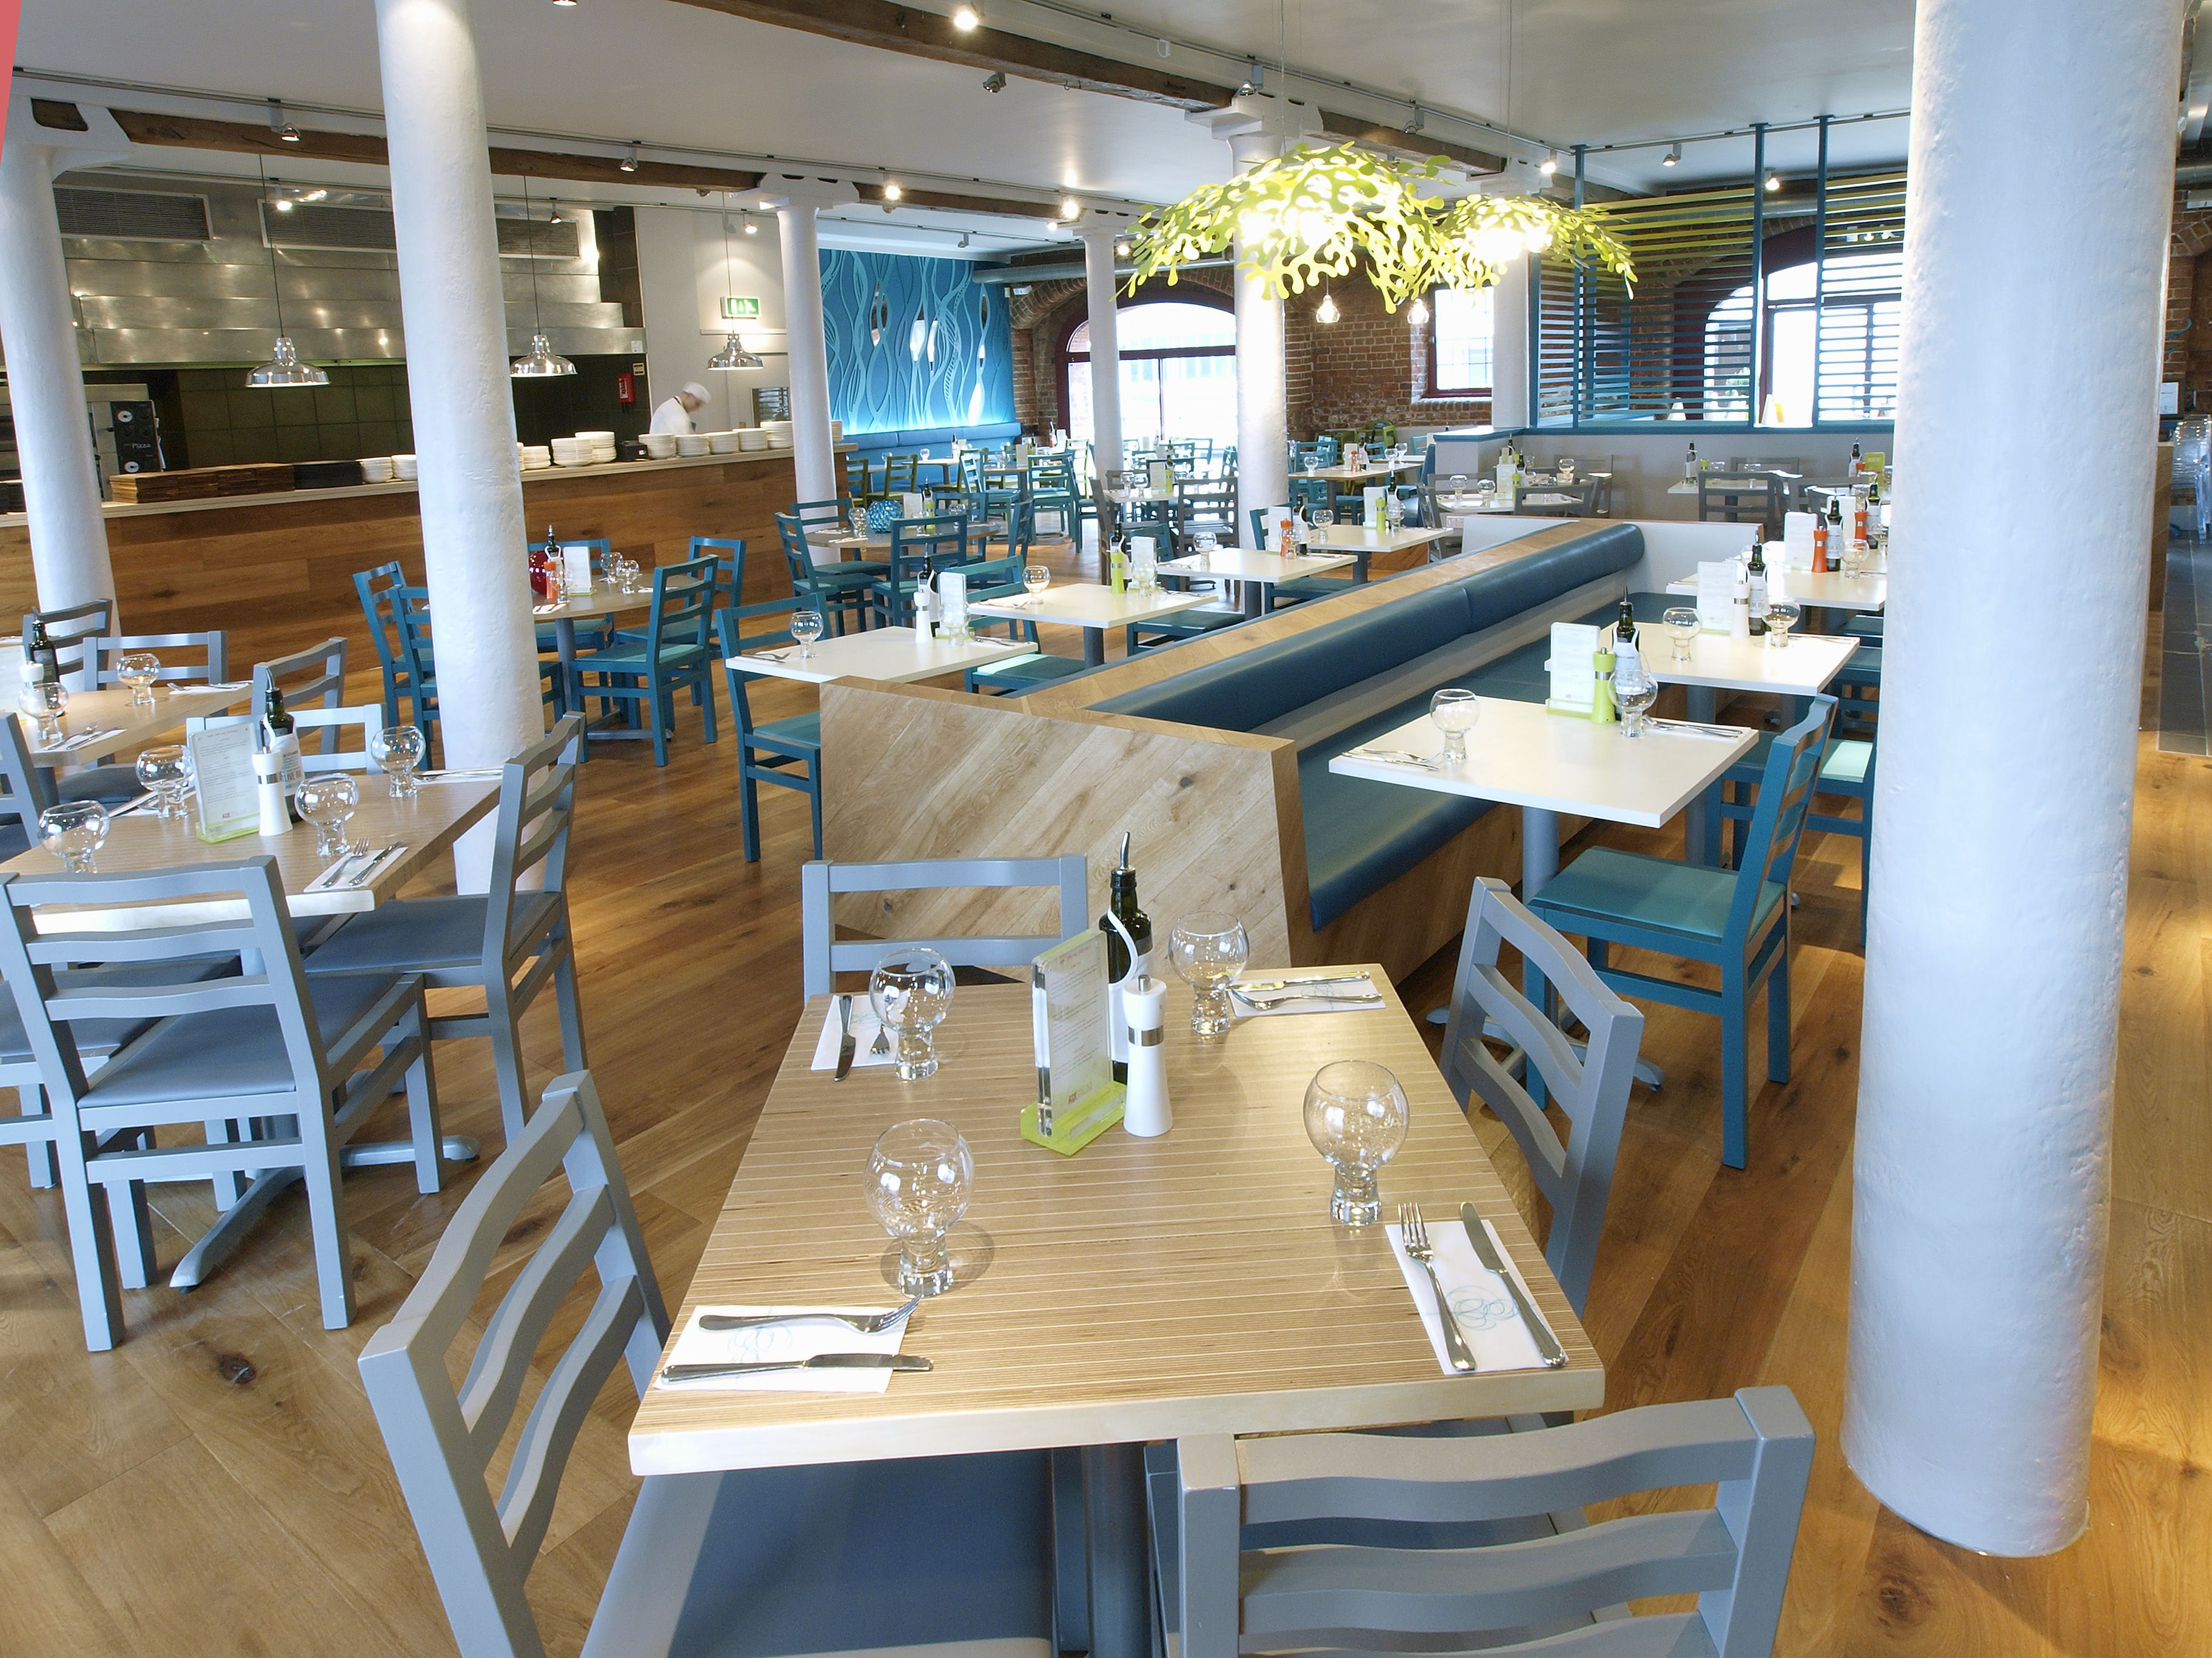 Reserve a table at ASK Italian - Kingston upon Hull